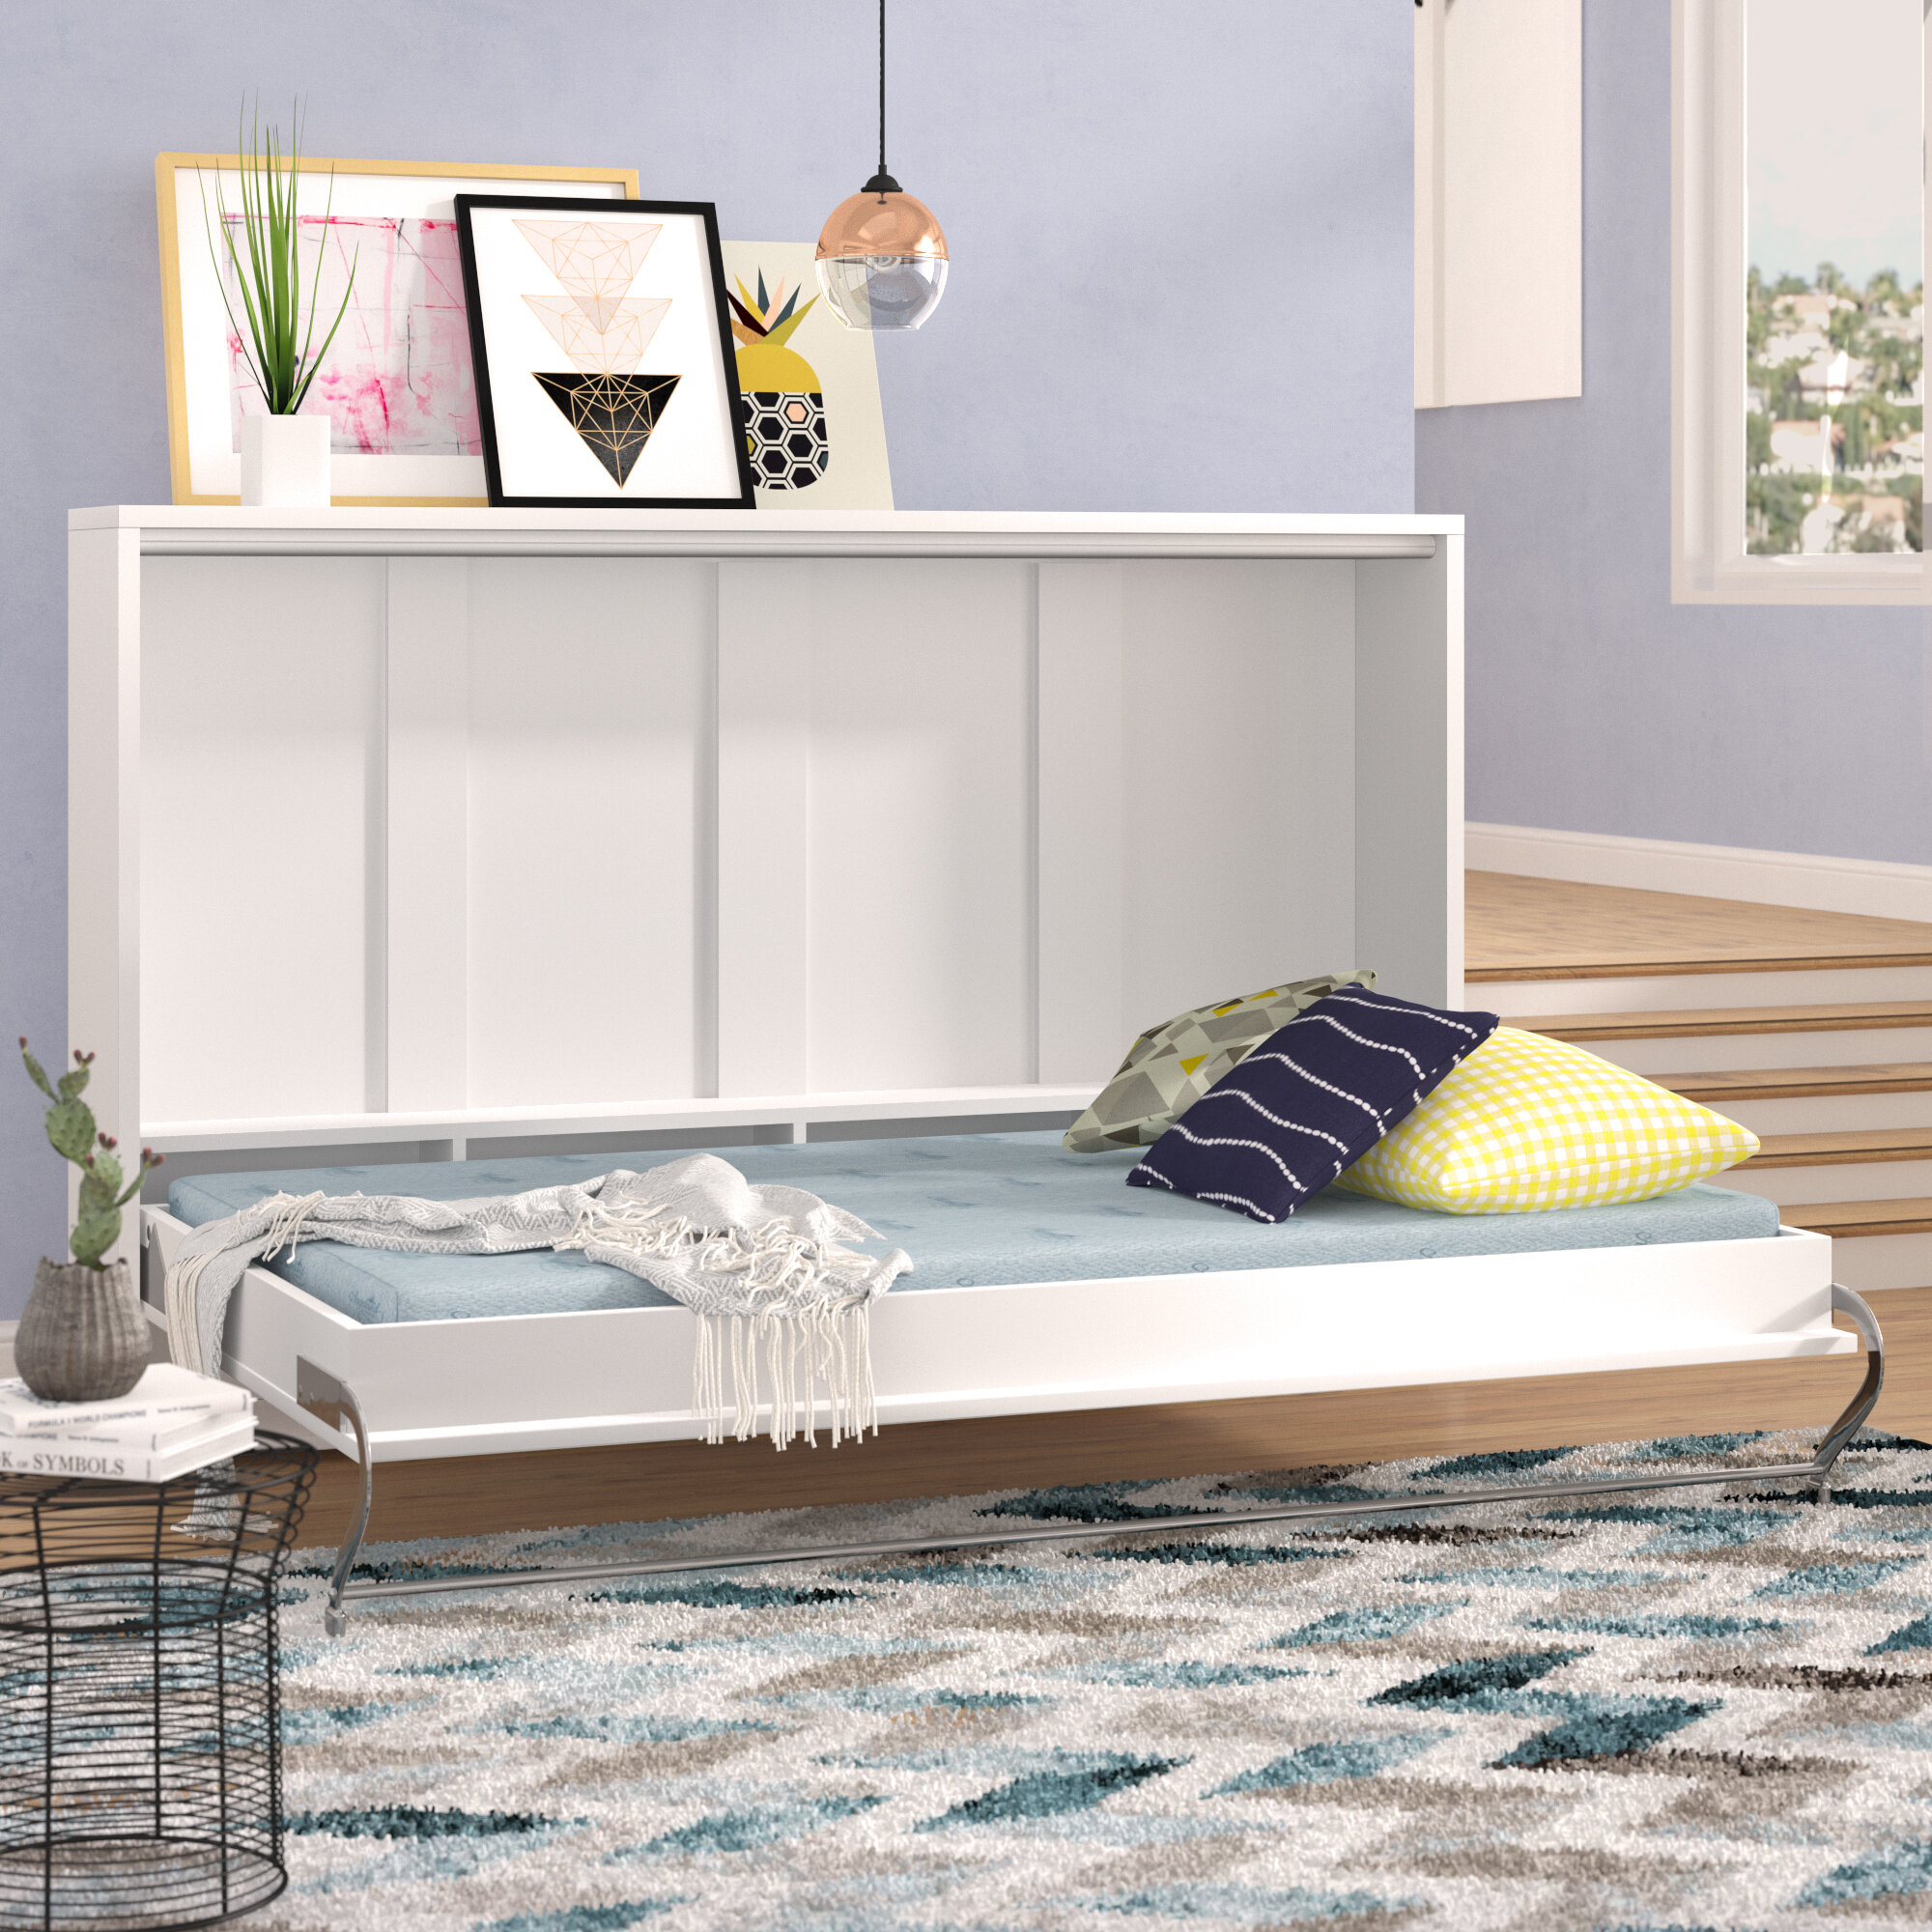 Brayden Studio Clearwater Twin Murphy Bed with Mattress | Wayfair